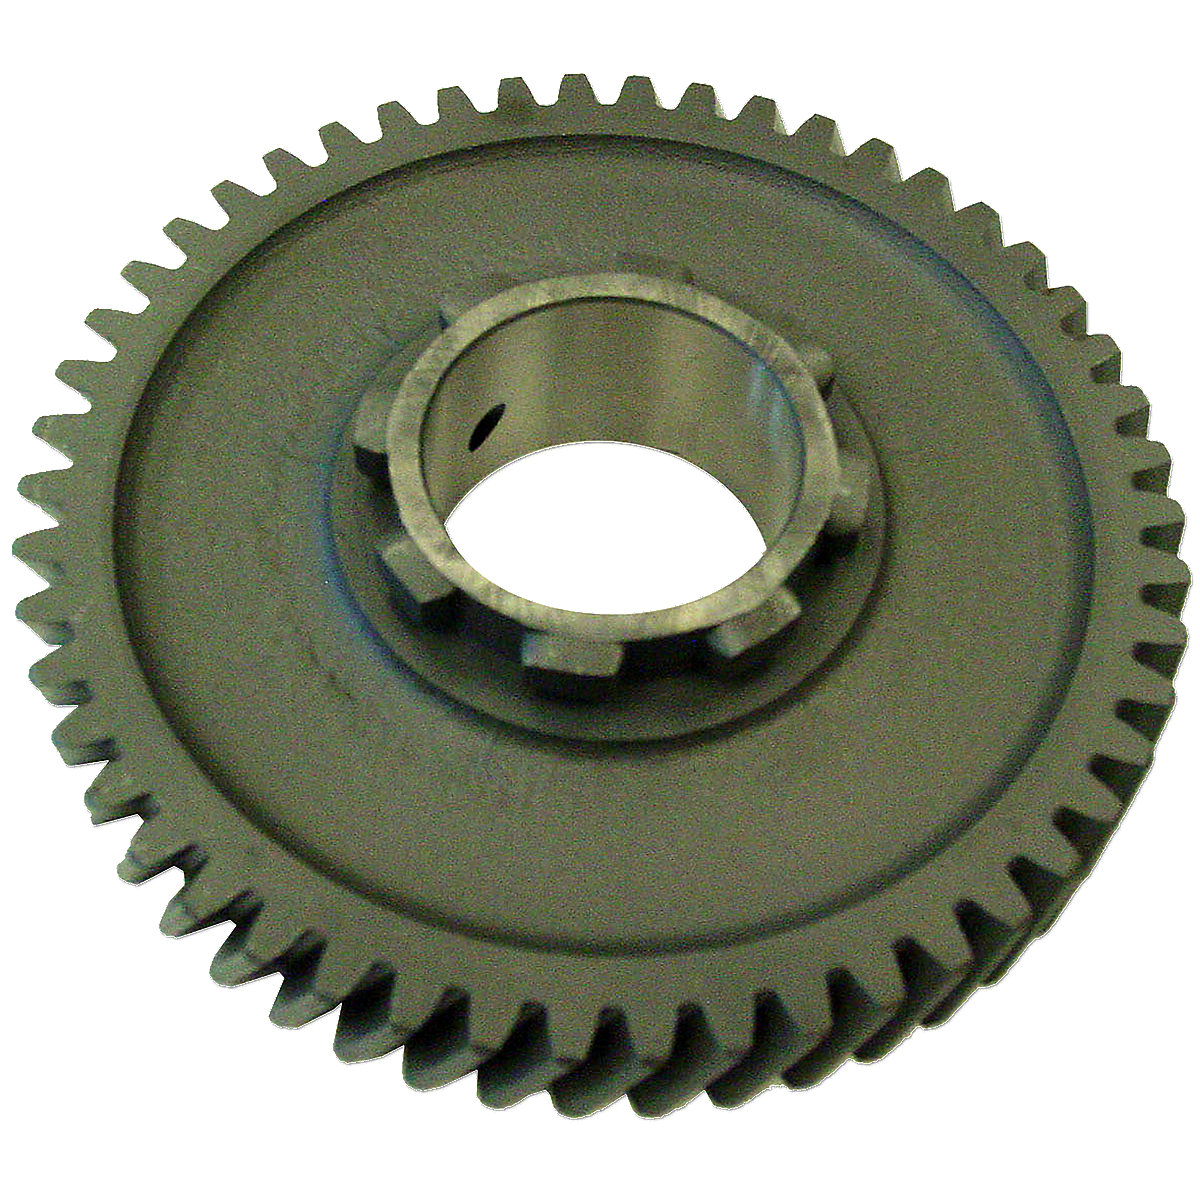 1st Pinion Shaft Gear For Allis Chalmers: D10, D12, D14, D15.